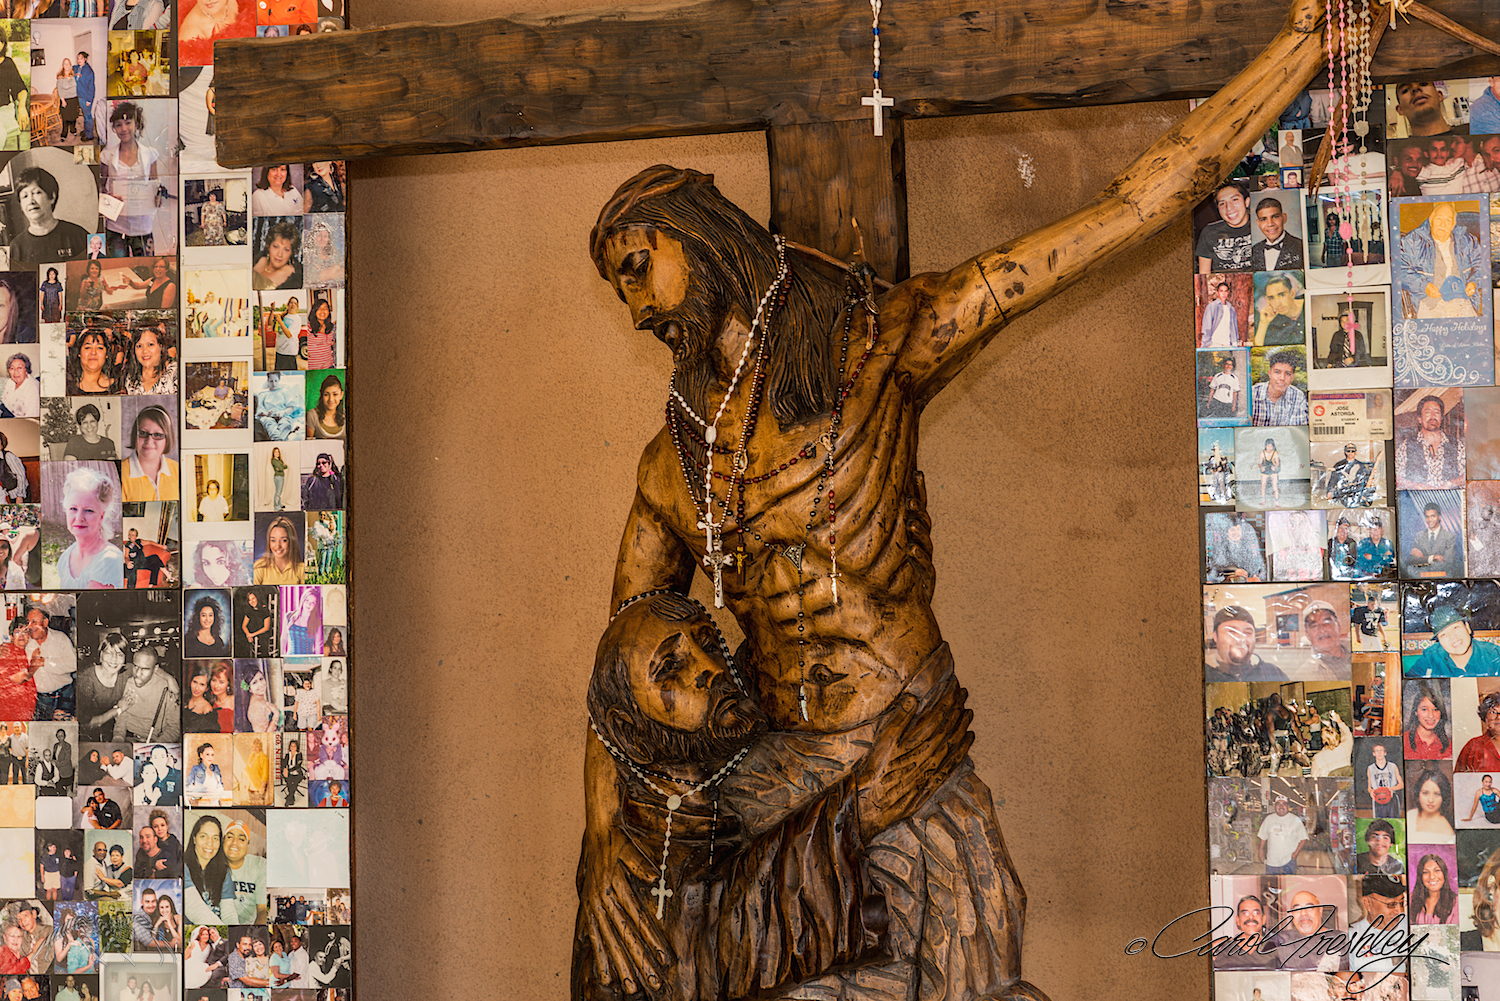 Statue in new open porch. Photos of loved ones are left on the walls with requests for prayers.